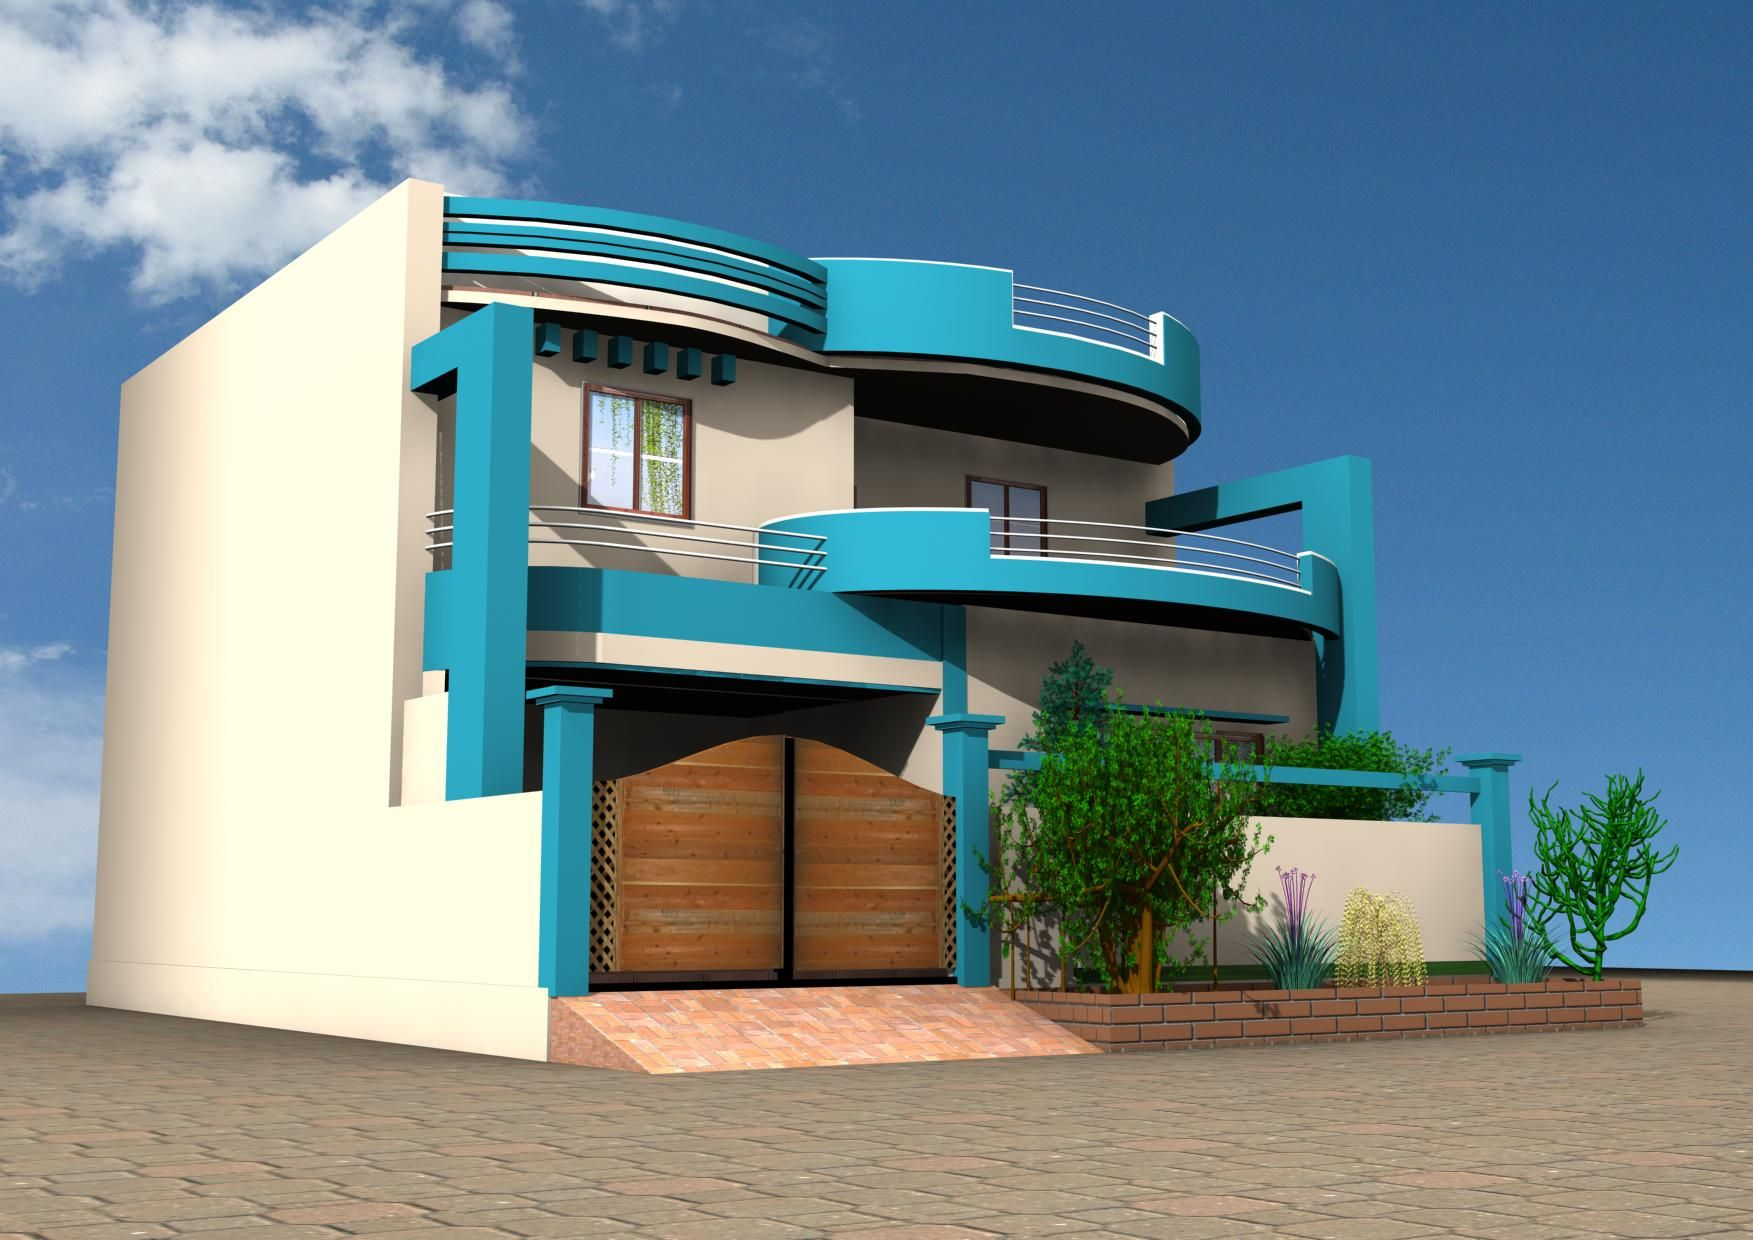 awesome exterior design a house online modern architecture plans with blue and light brown external walls - Home Designing Online